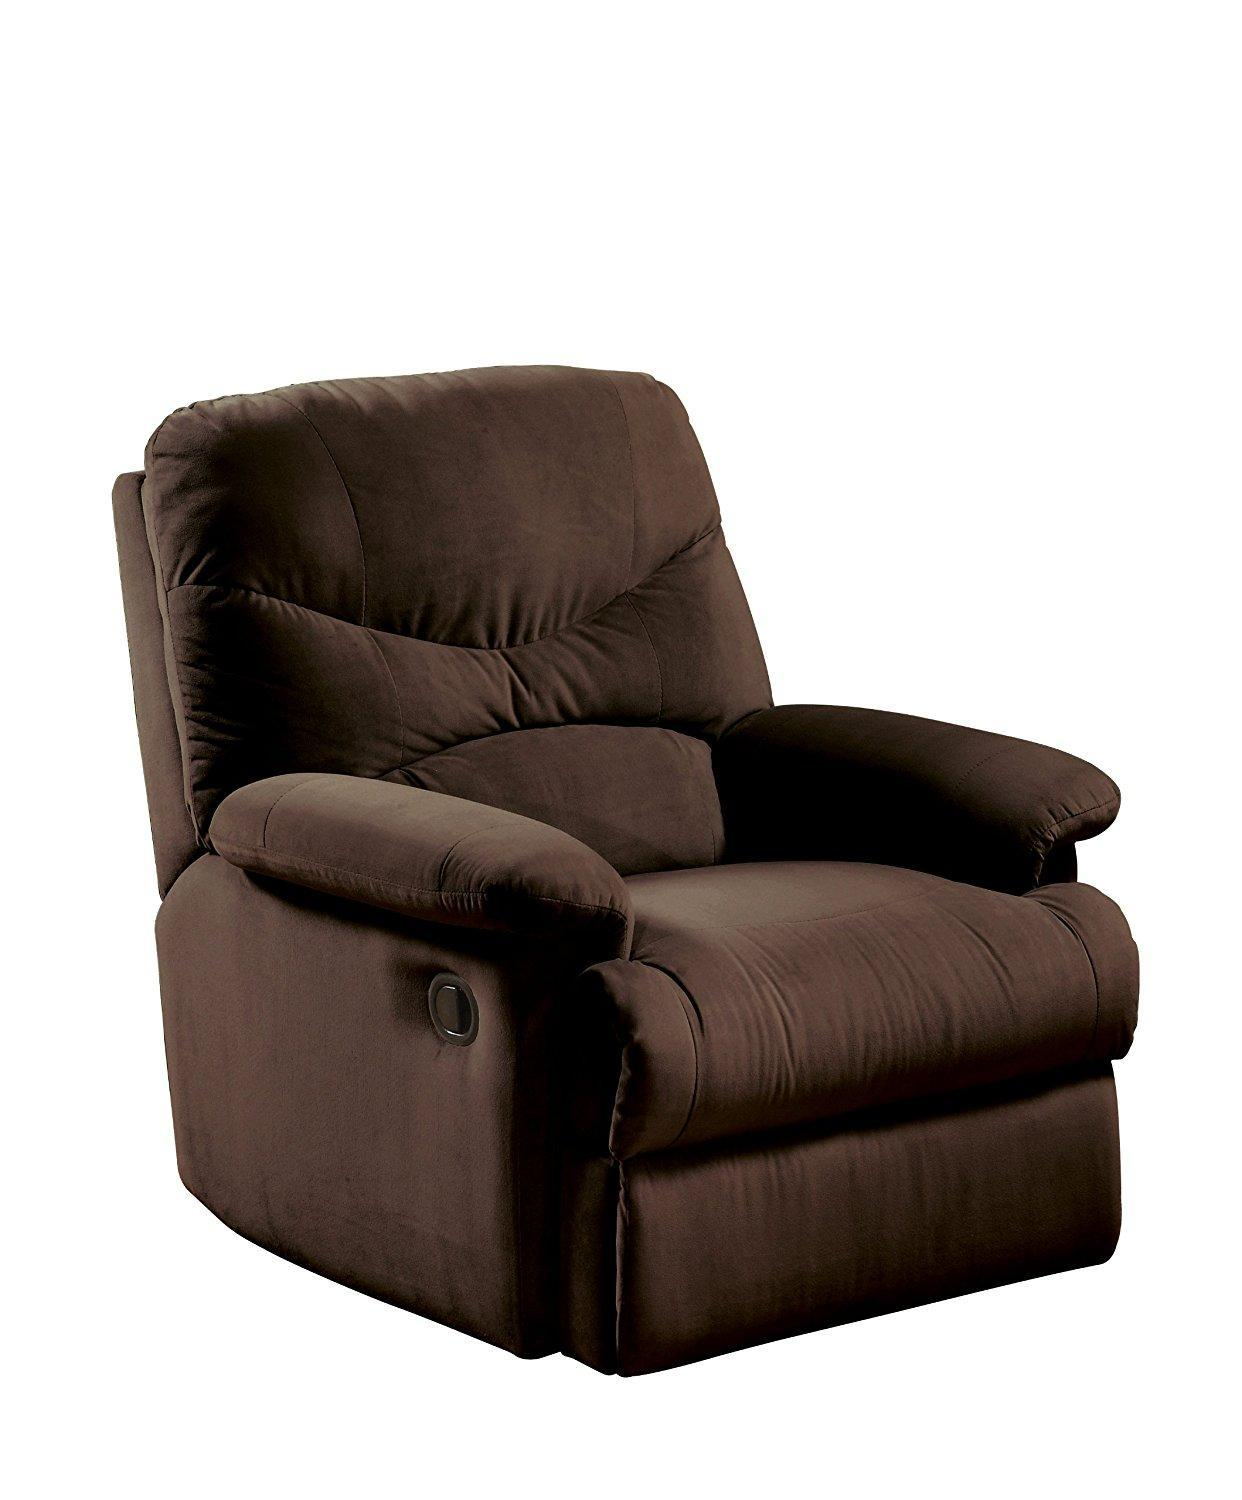 Amazon Com Acme Arcadia Recliner Oakwood Chocolate